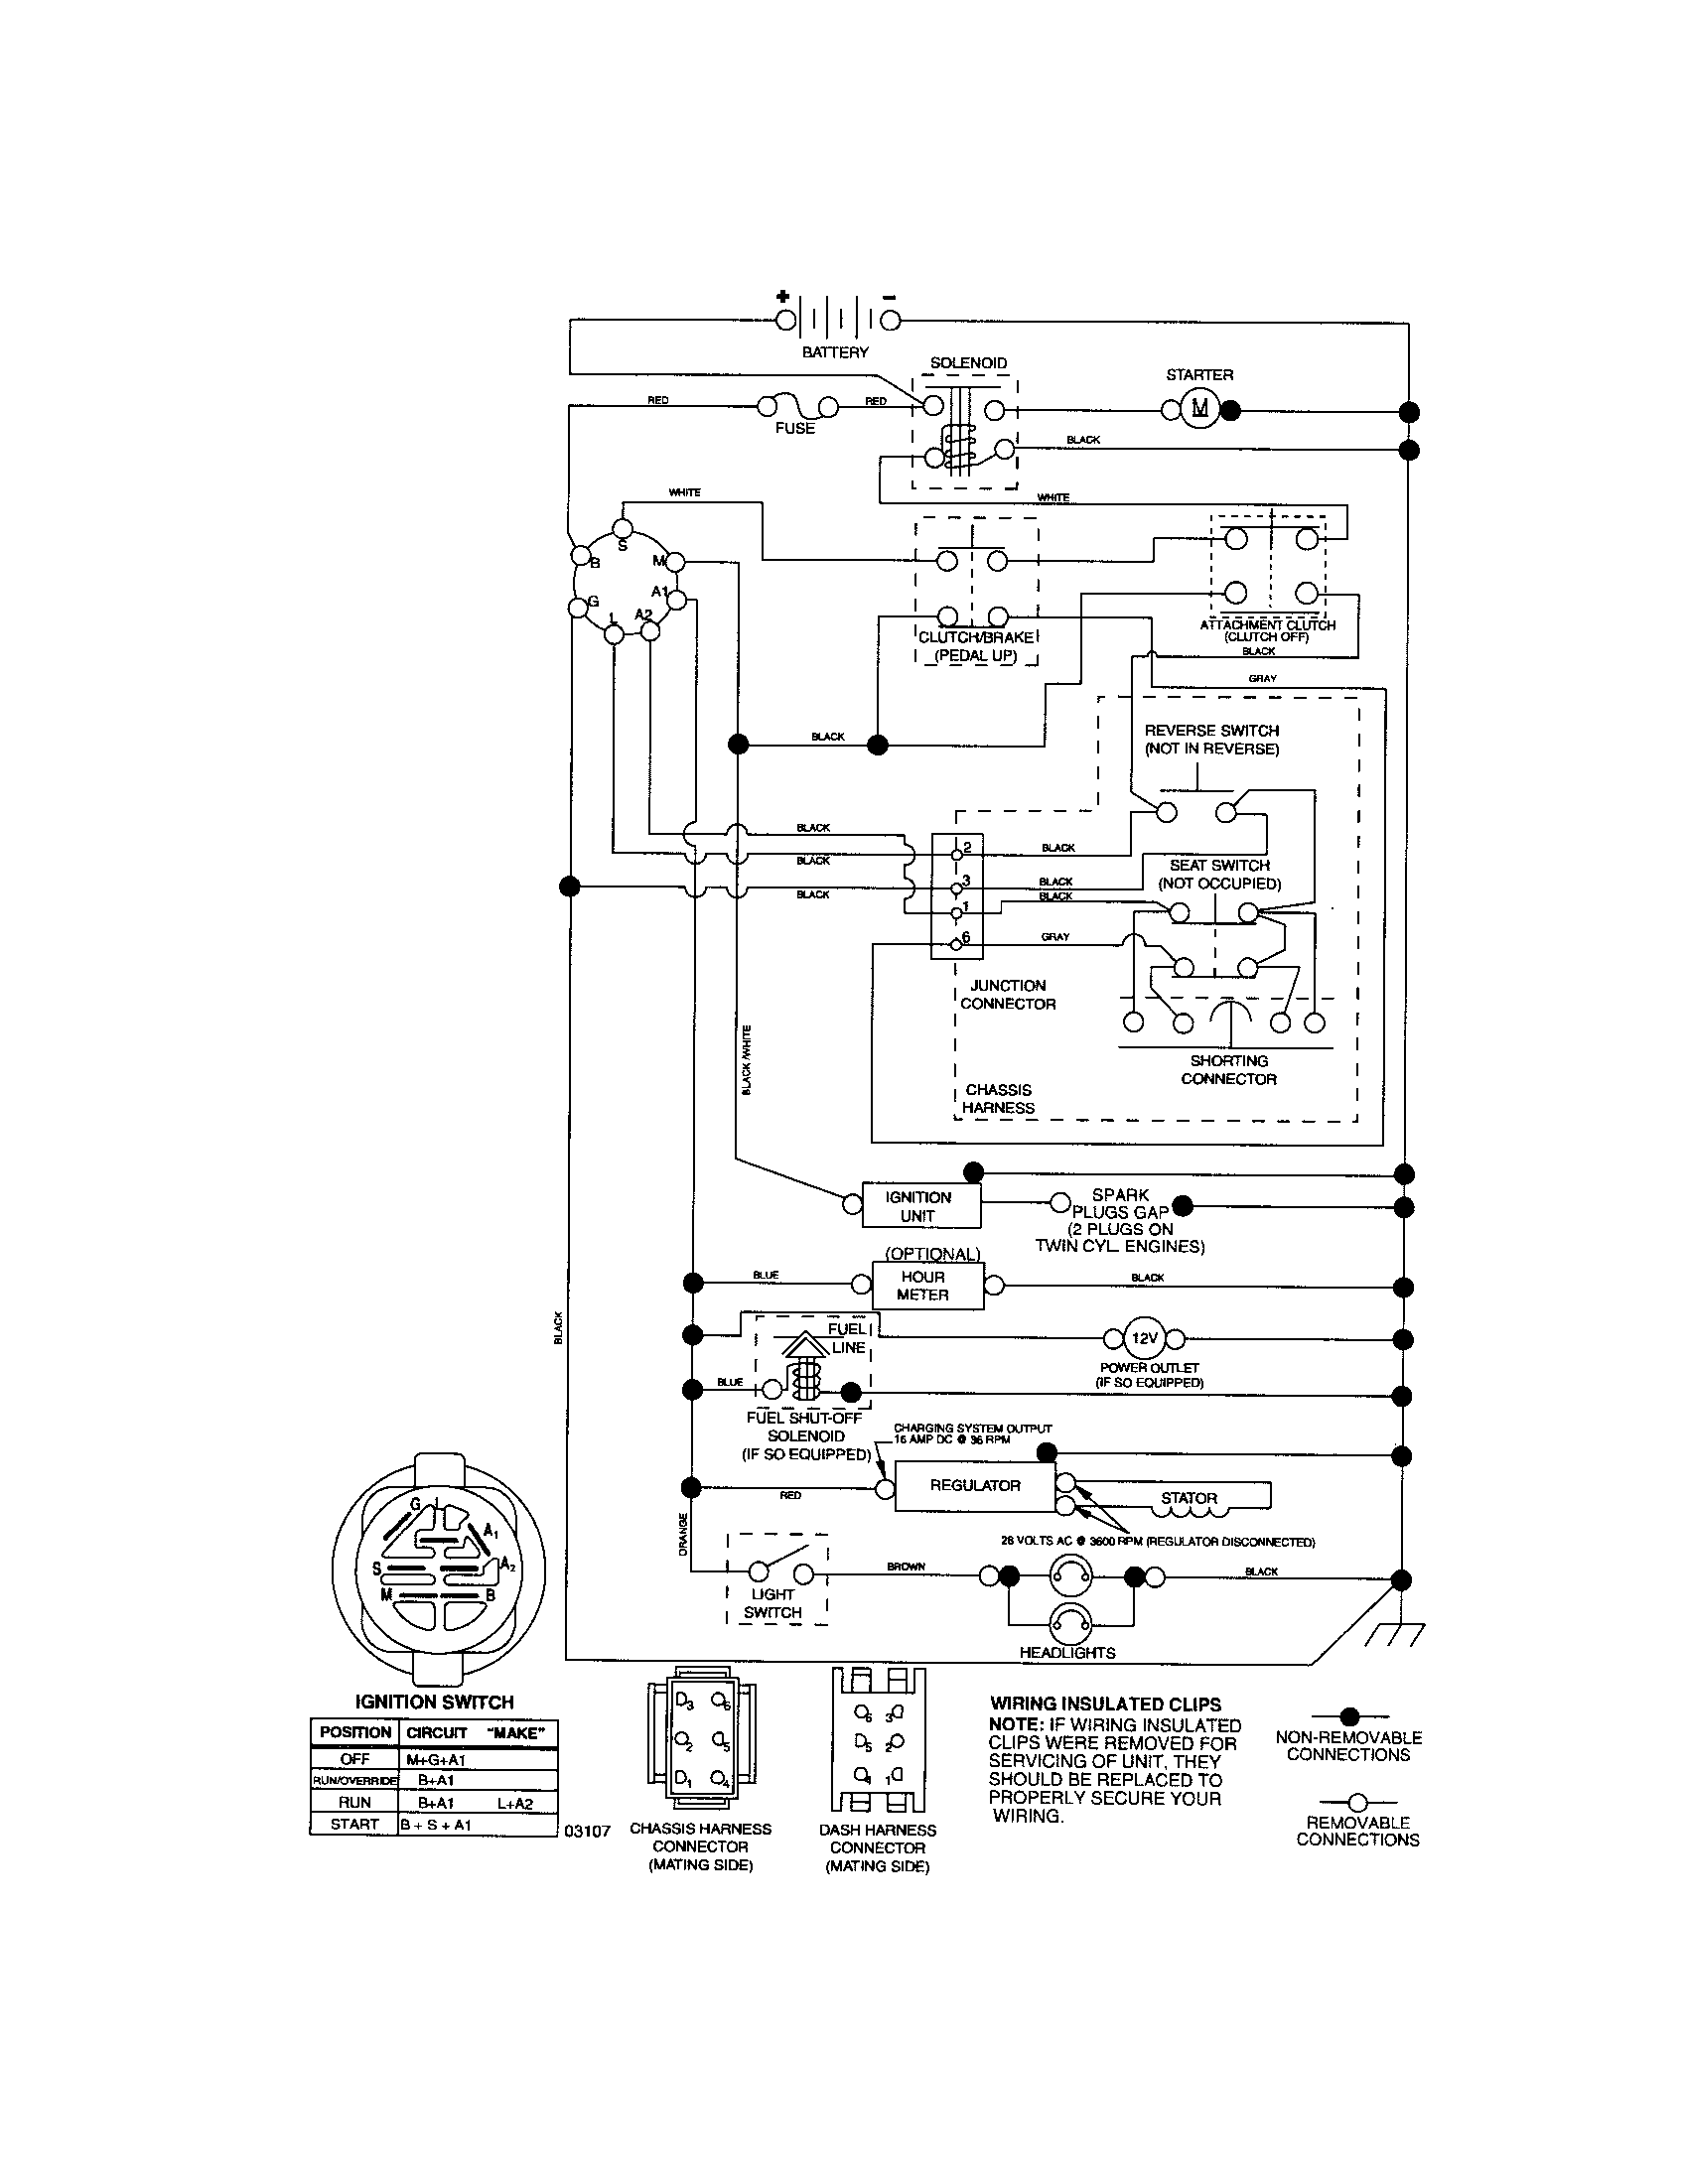 6af5f1447fd13c8443376822ddc1e105 craftsman riding mower electrical diagram wiring diagram poulan lawn tractor wiring diagram at aneh.co